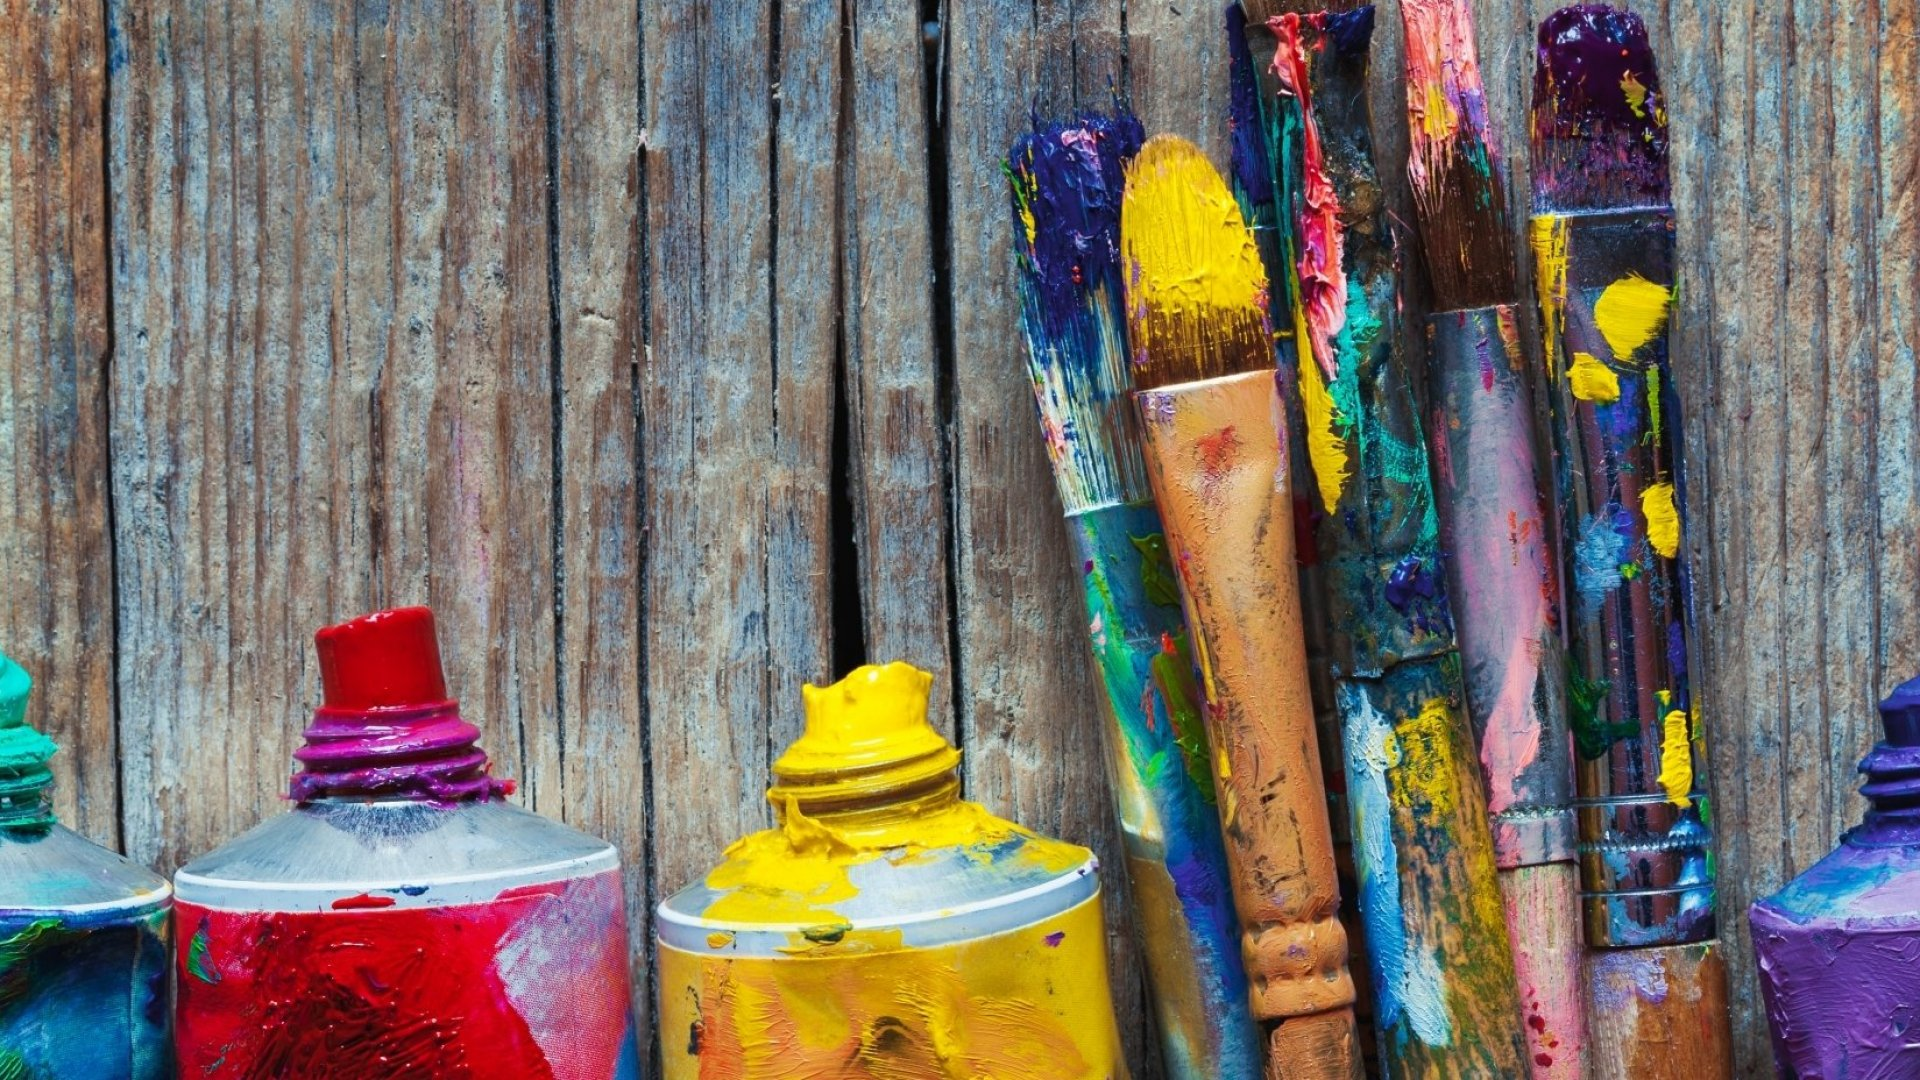 Creativity is Born Out of Discomfort